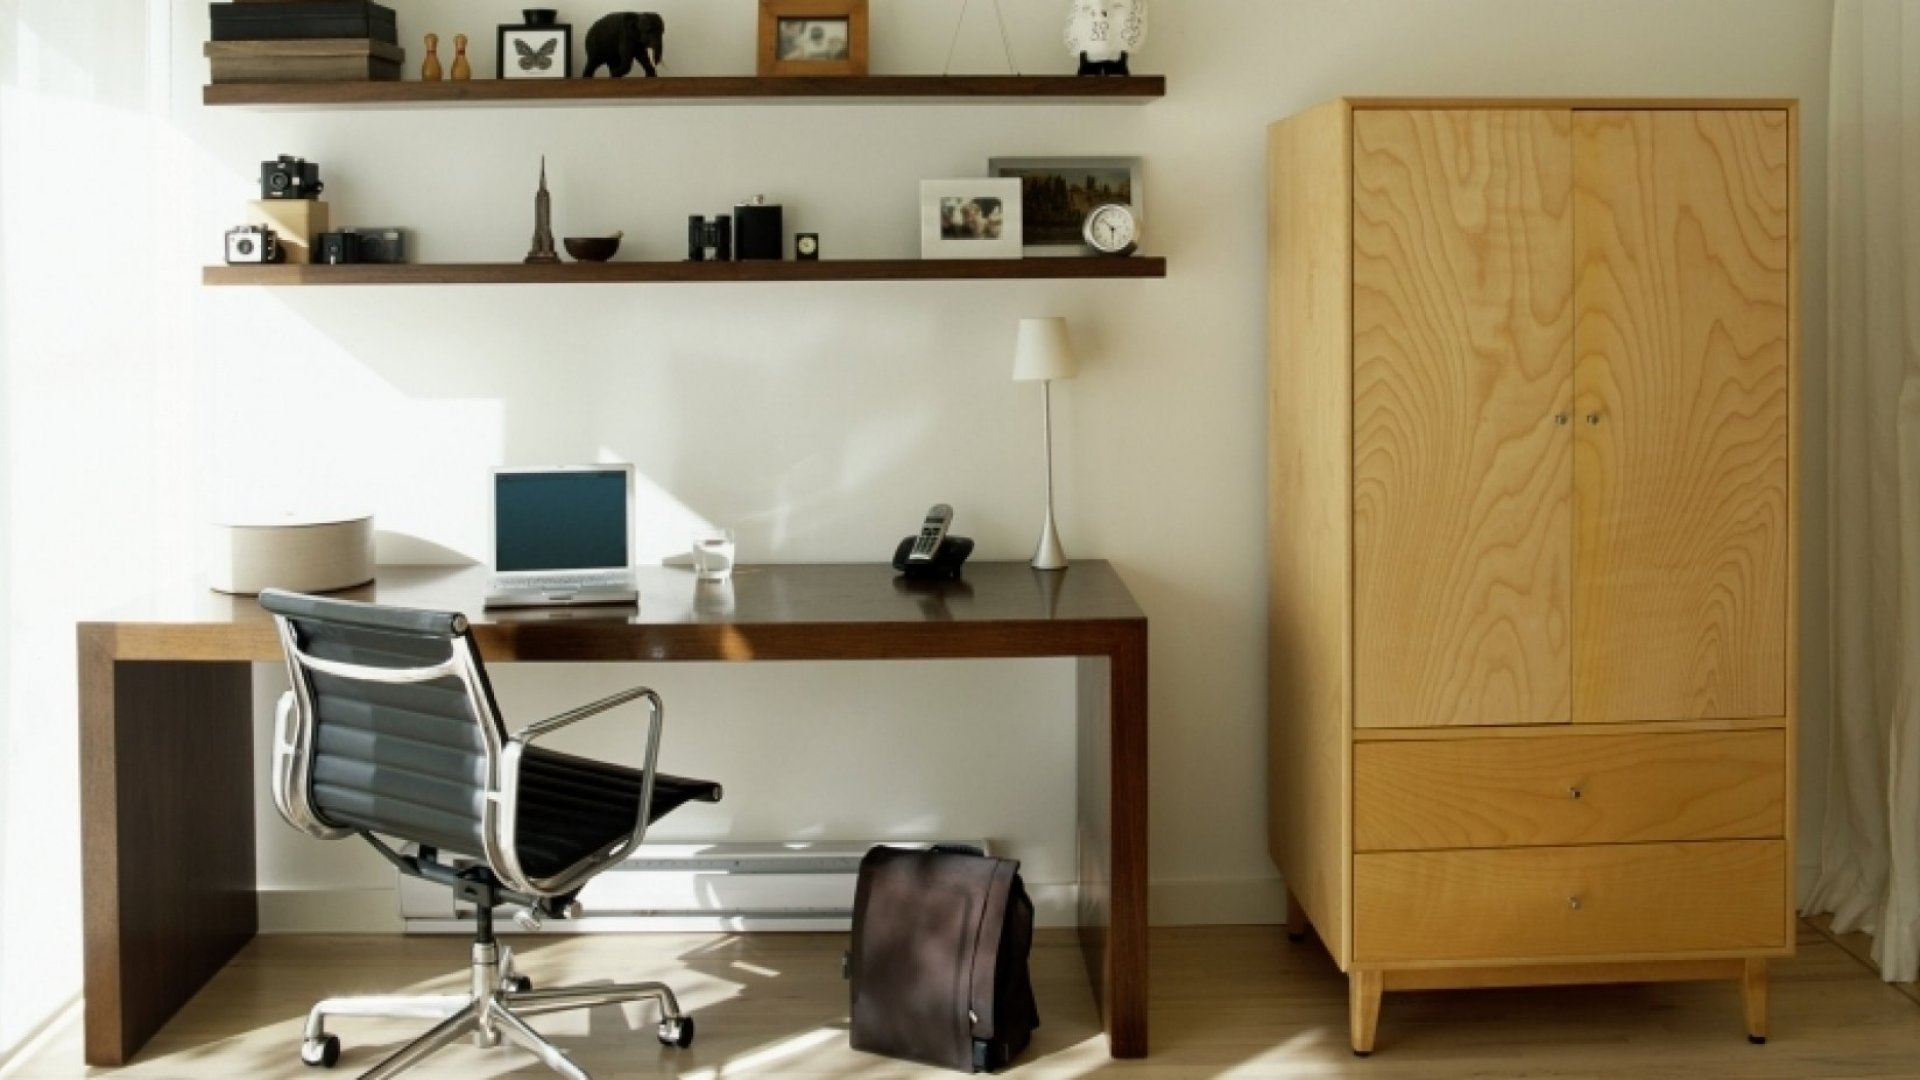 Why the Insanely Productive Work From Home